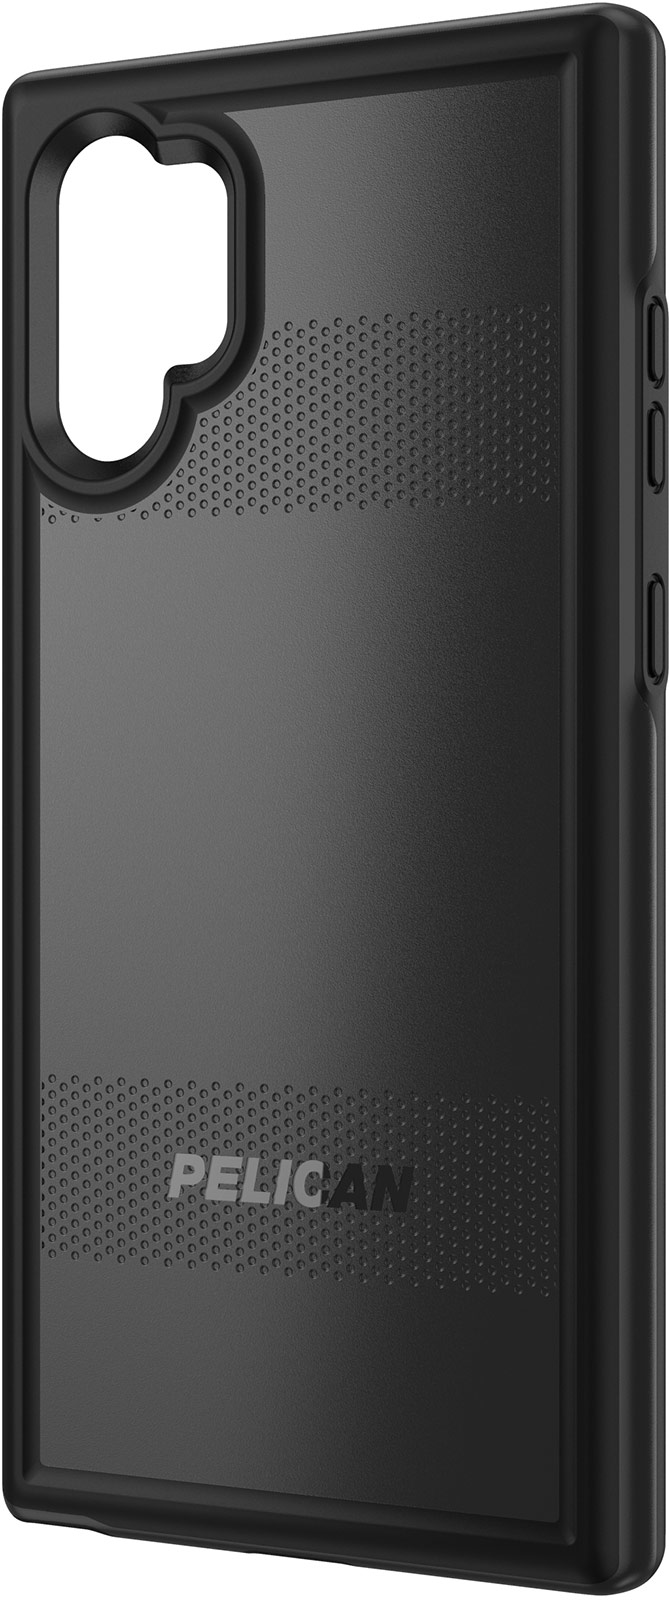 pelican galaxy note 10 plus protector black phone case